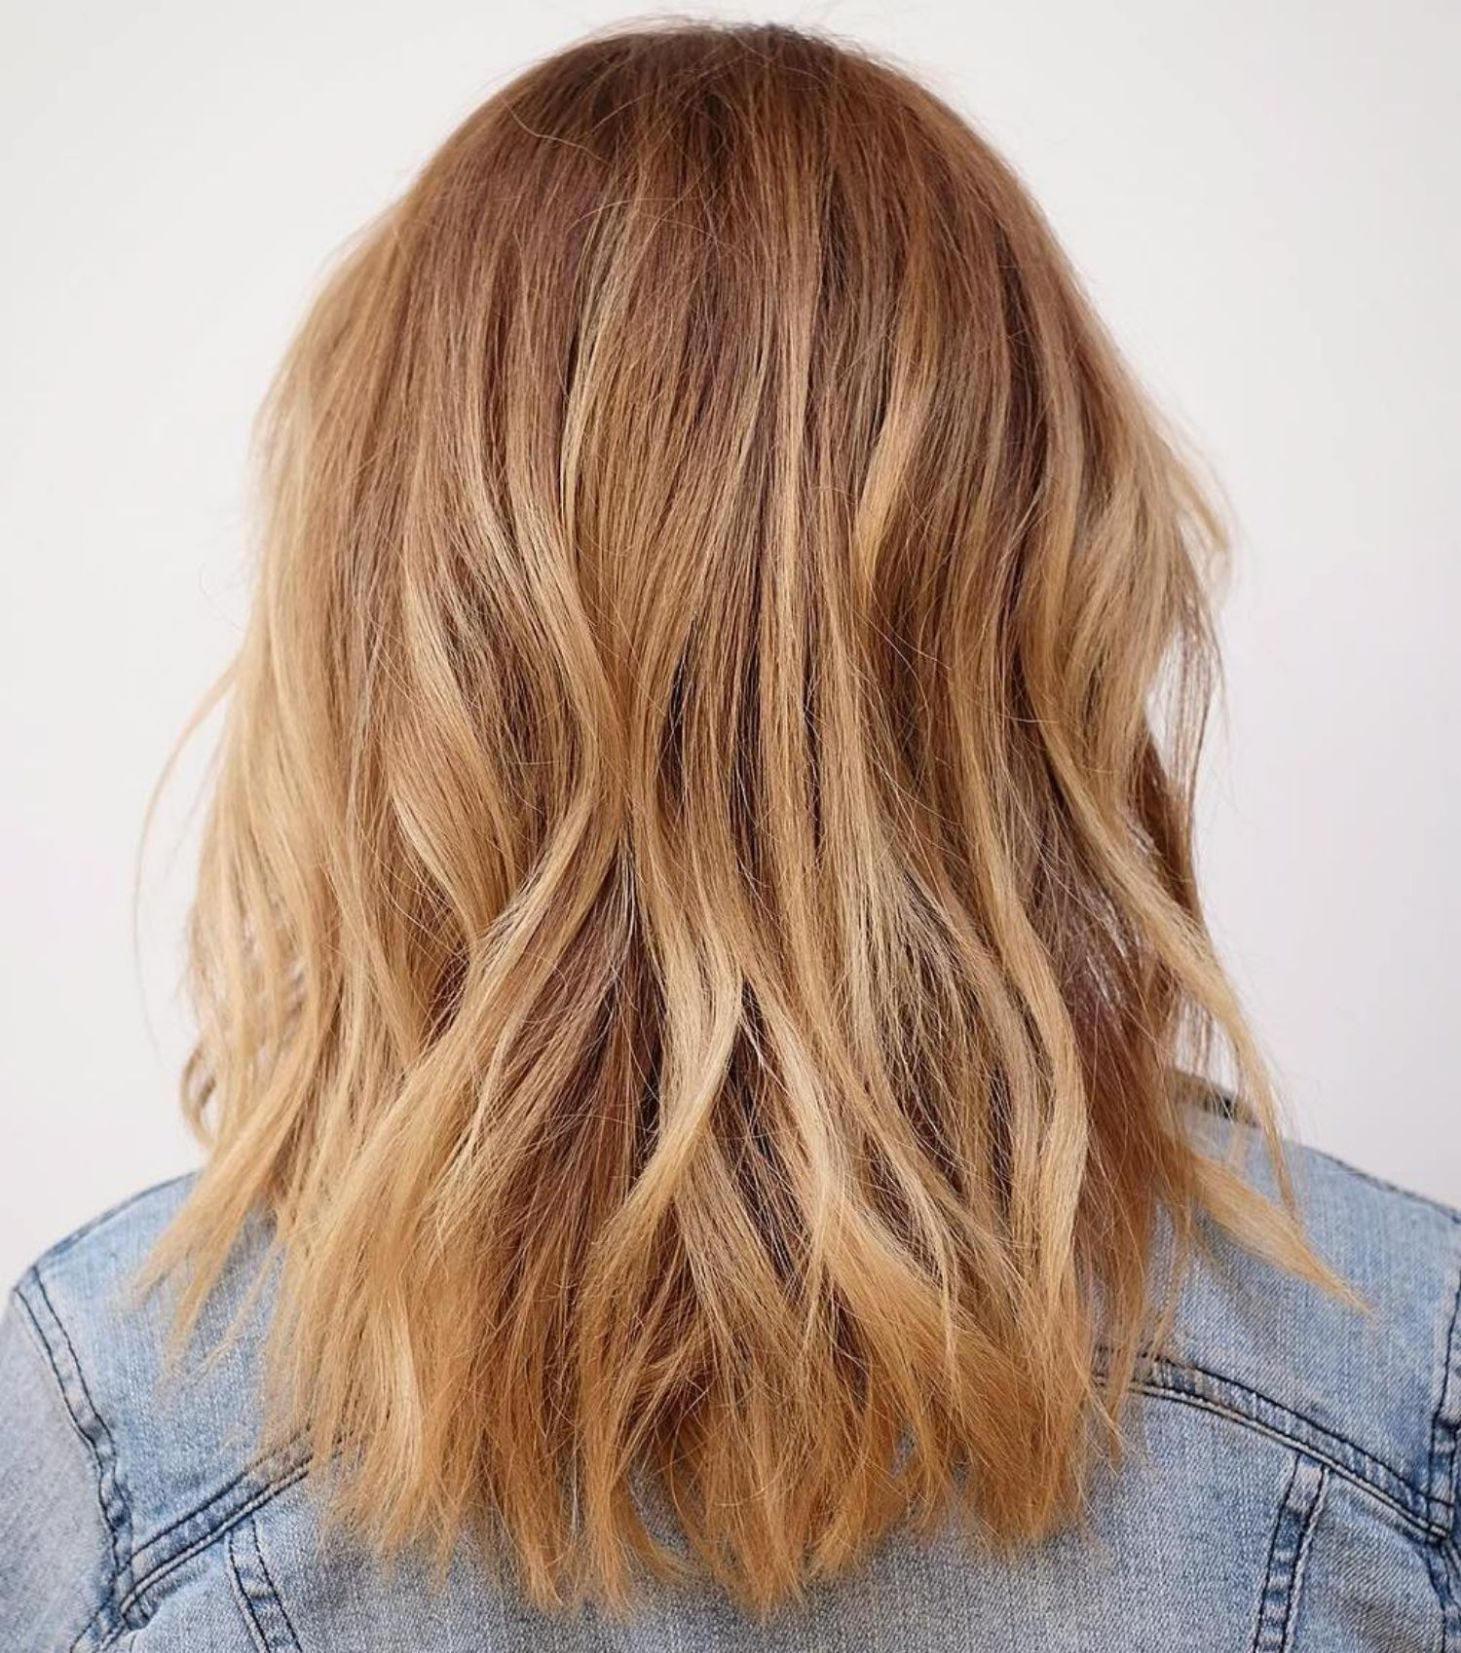 60 Best Strawberry Blonde Hair Ideas To Astonish Everyone With